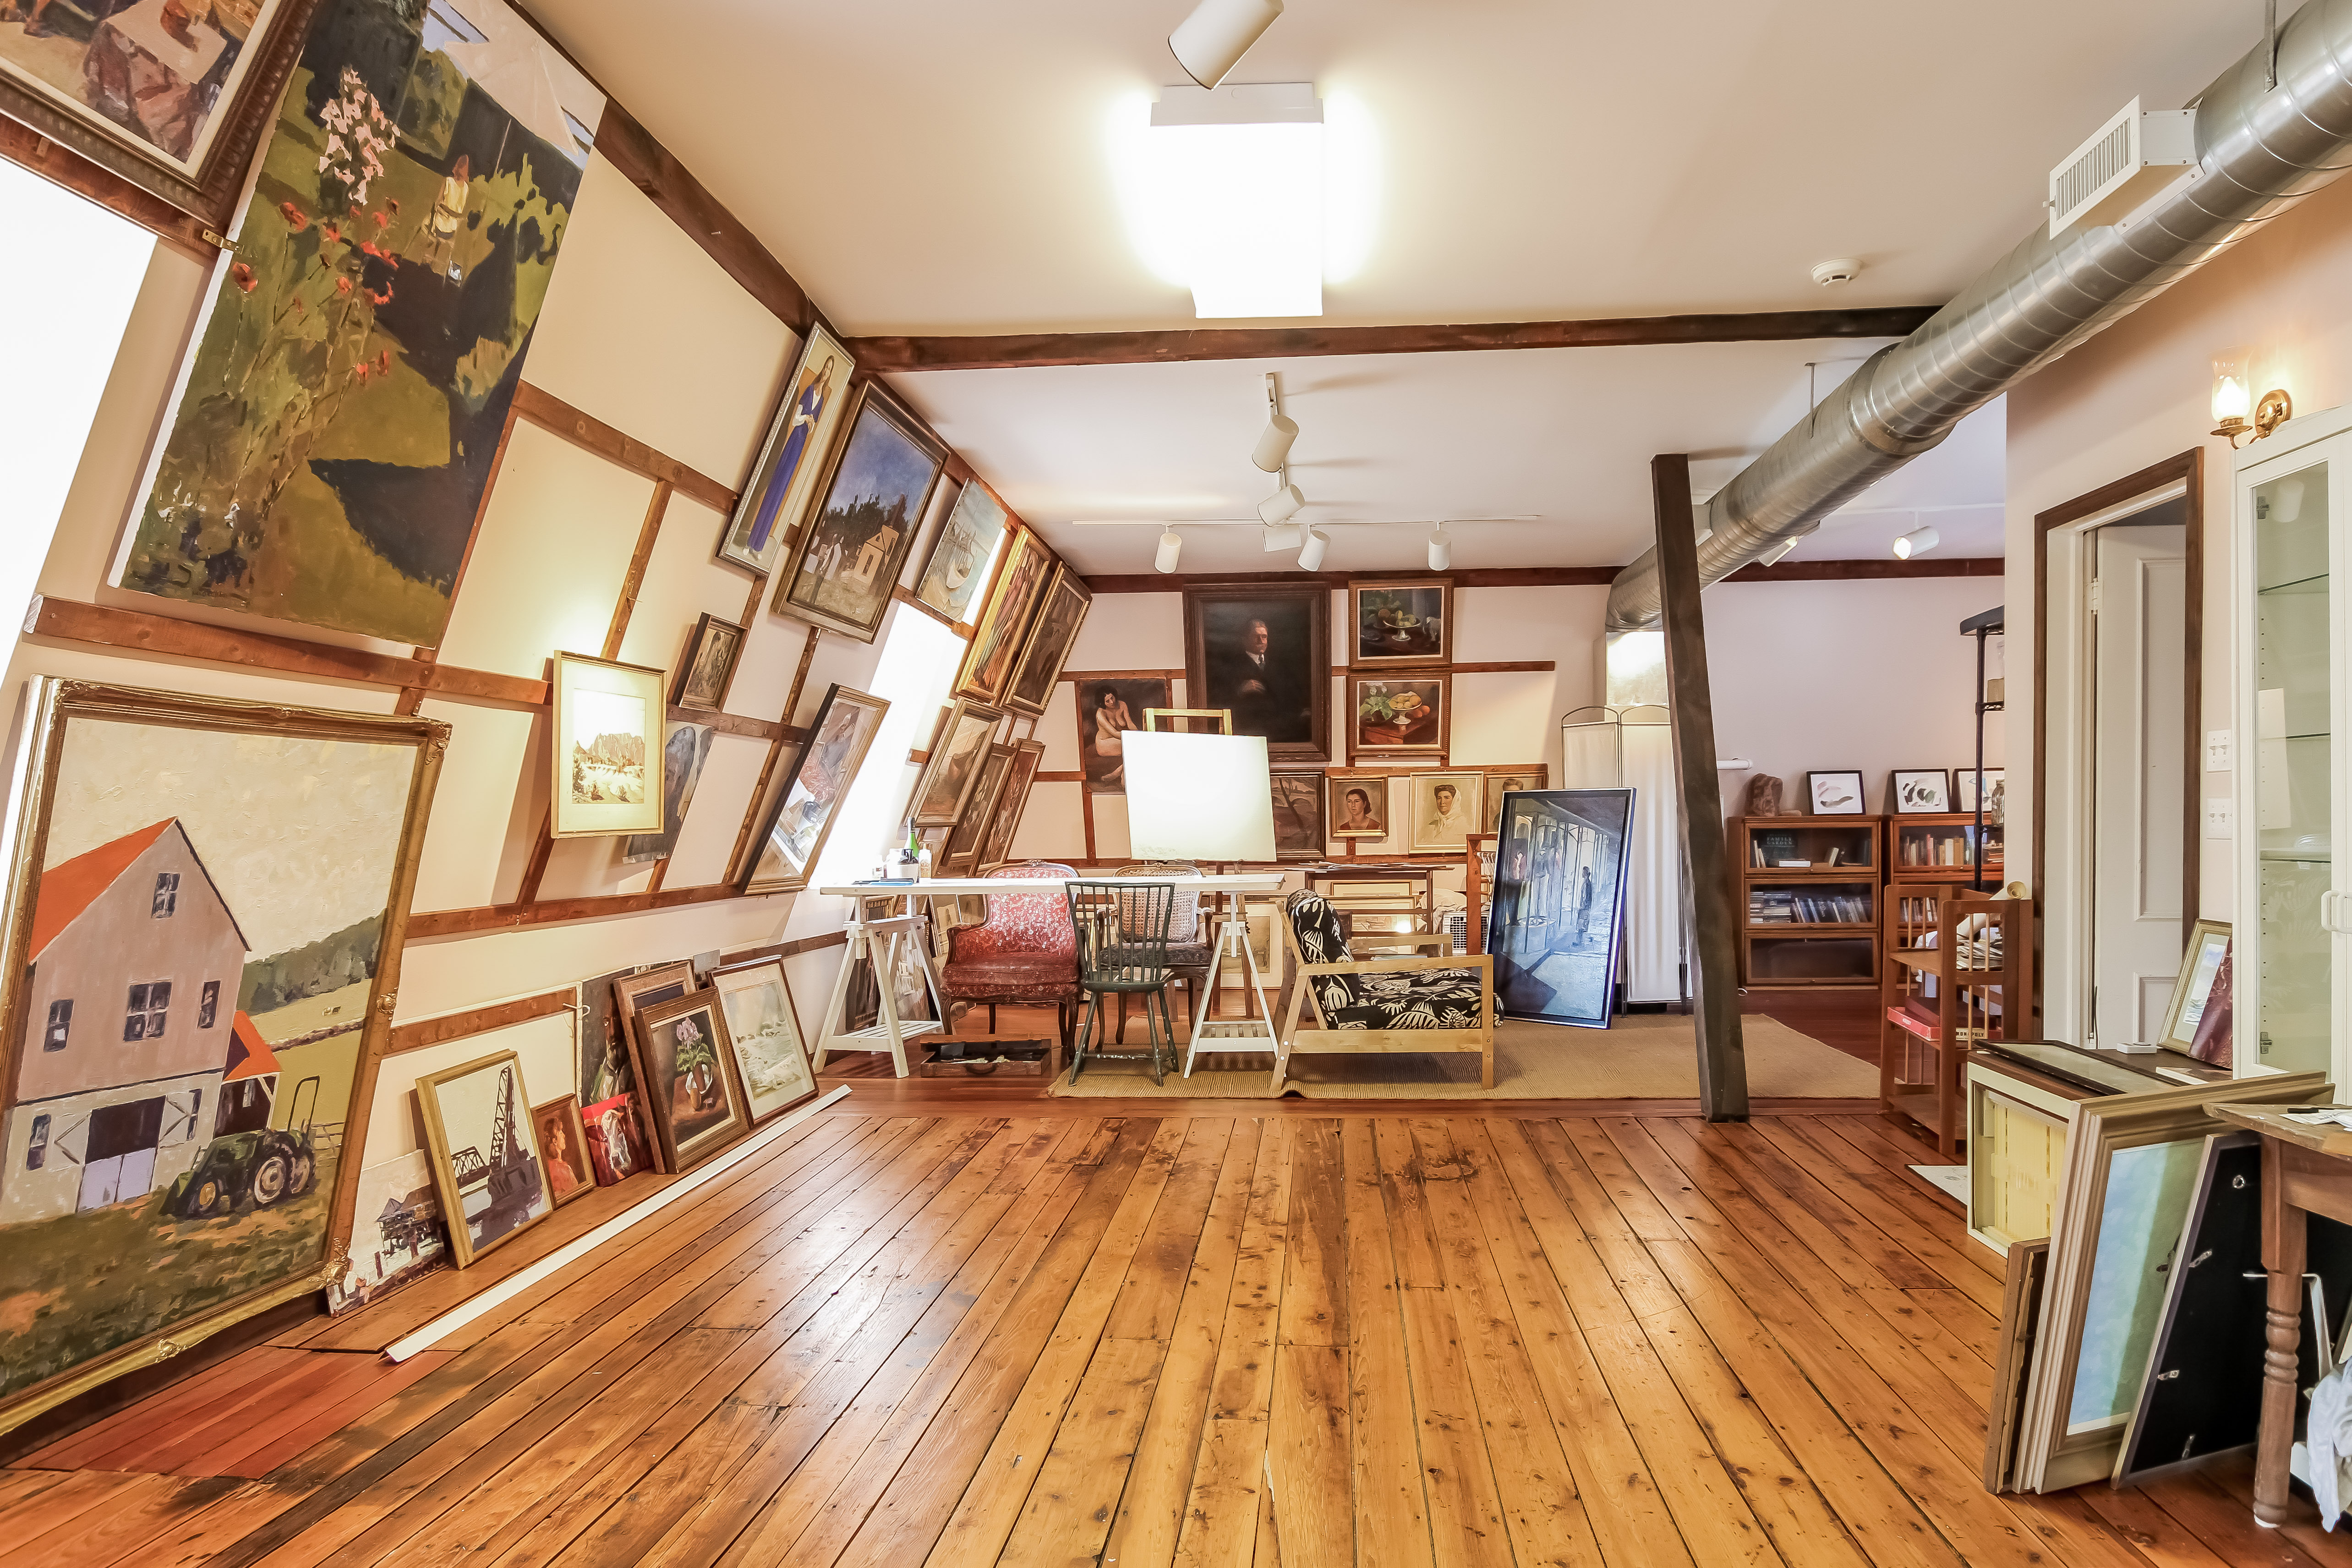 Artists will enjoy the studio located at the top of the main residence in this 11-acre Victorian-era compound.